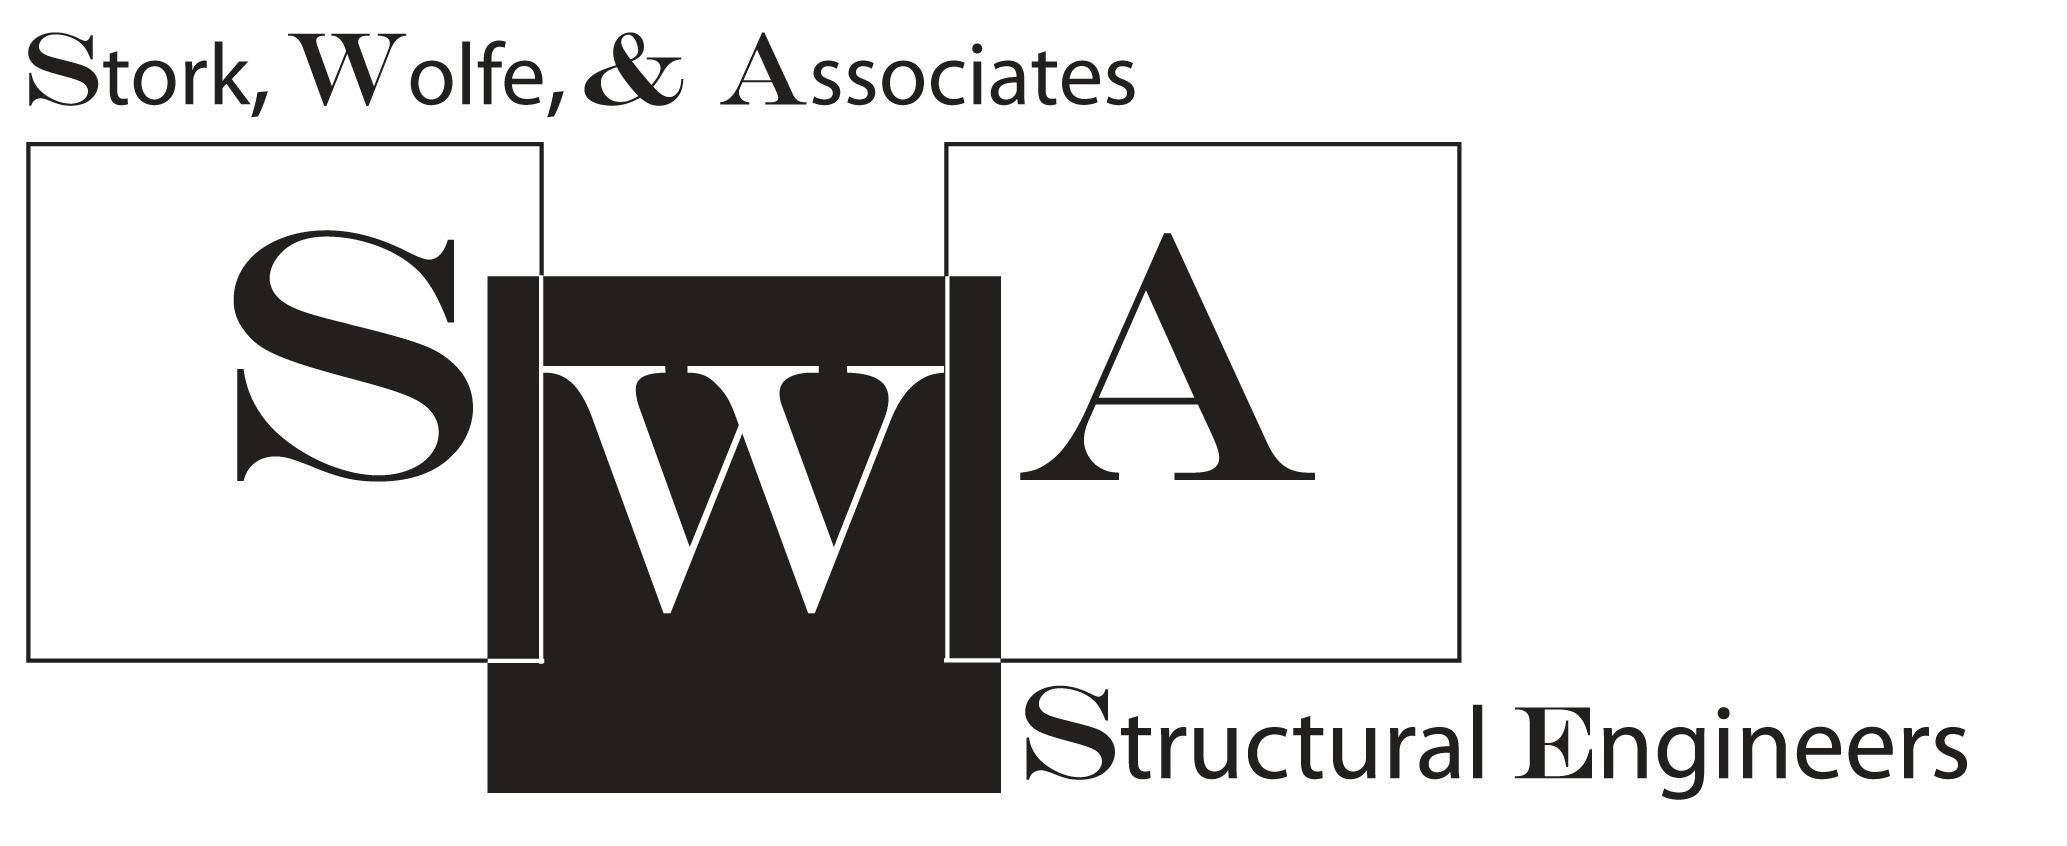 Stork, Wollfe, & Associates Logo